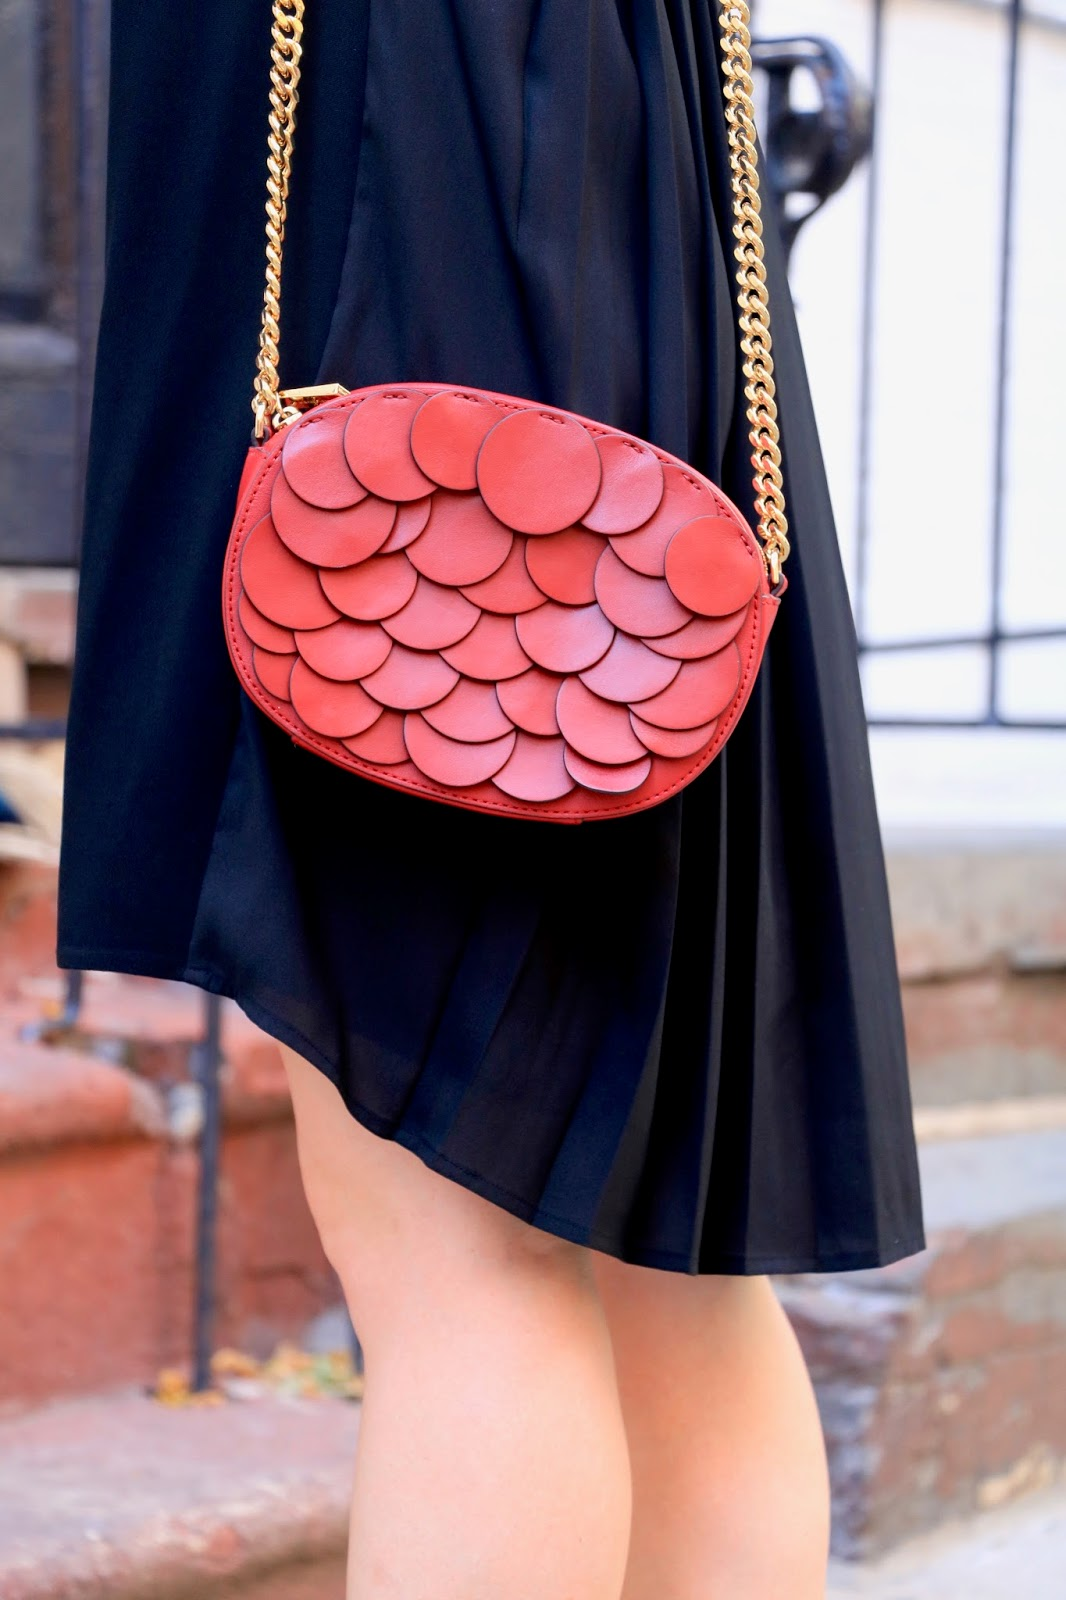 Fashion blogger Kathleen Harper carrying a red petal purse by Michael Kors